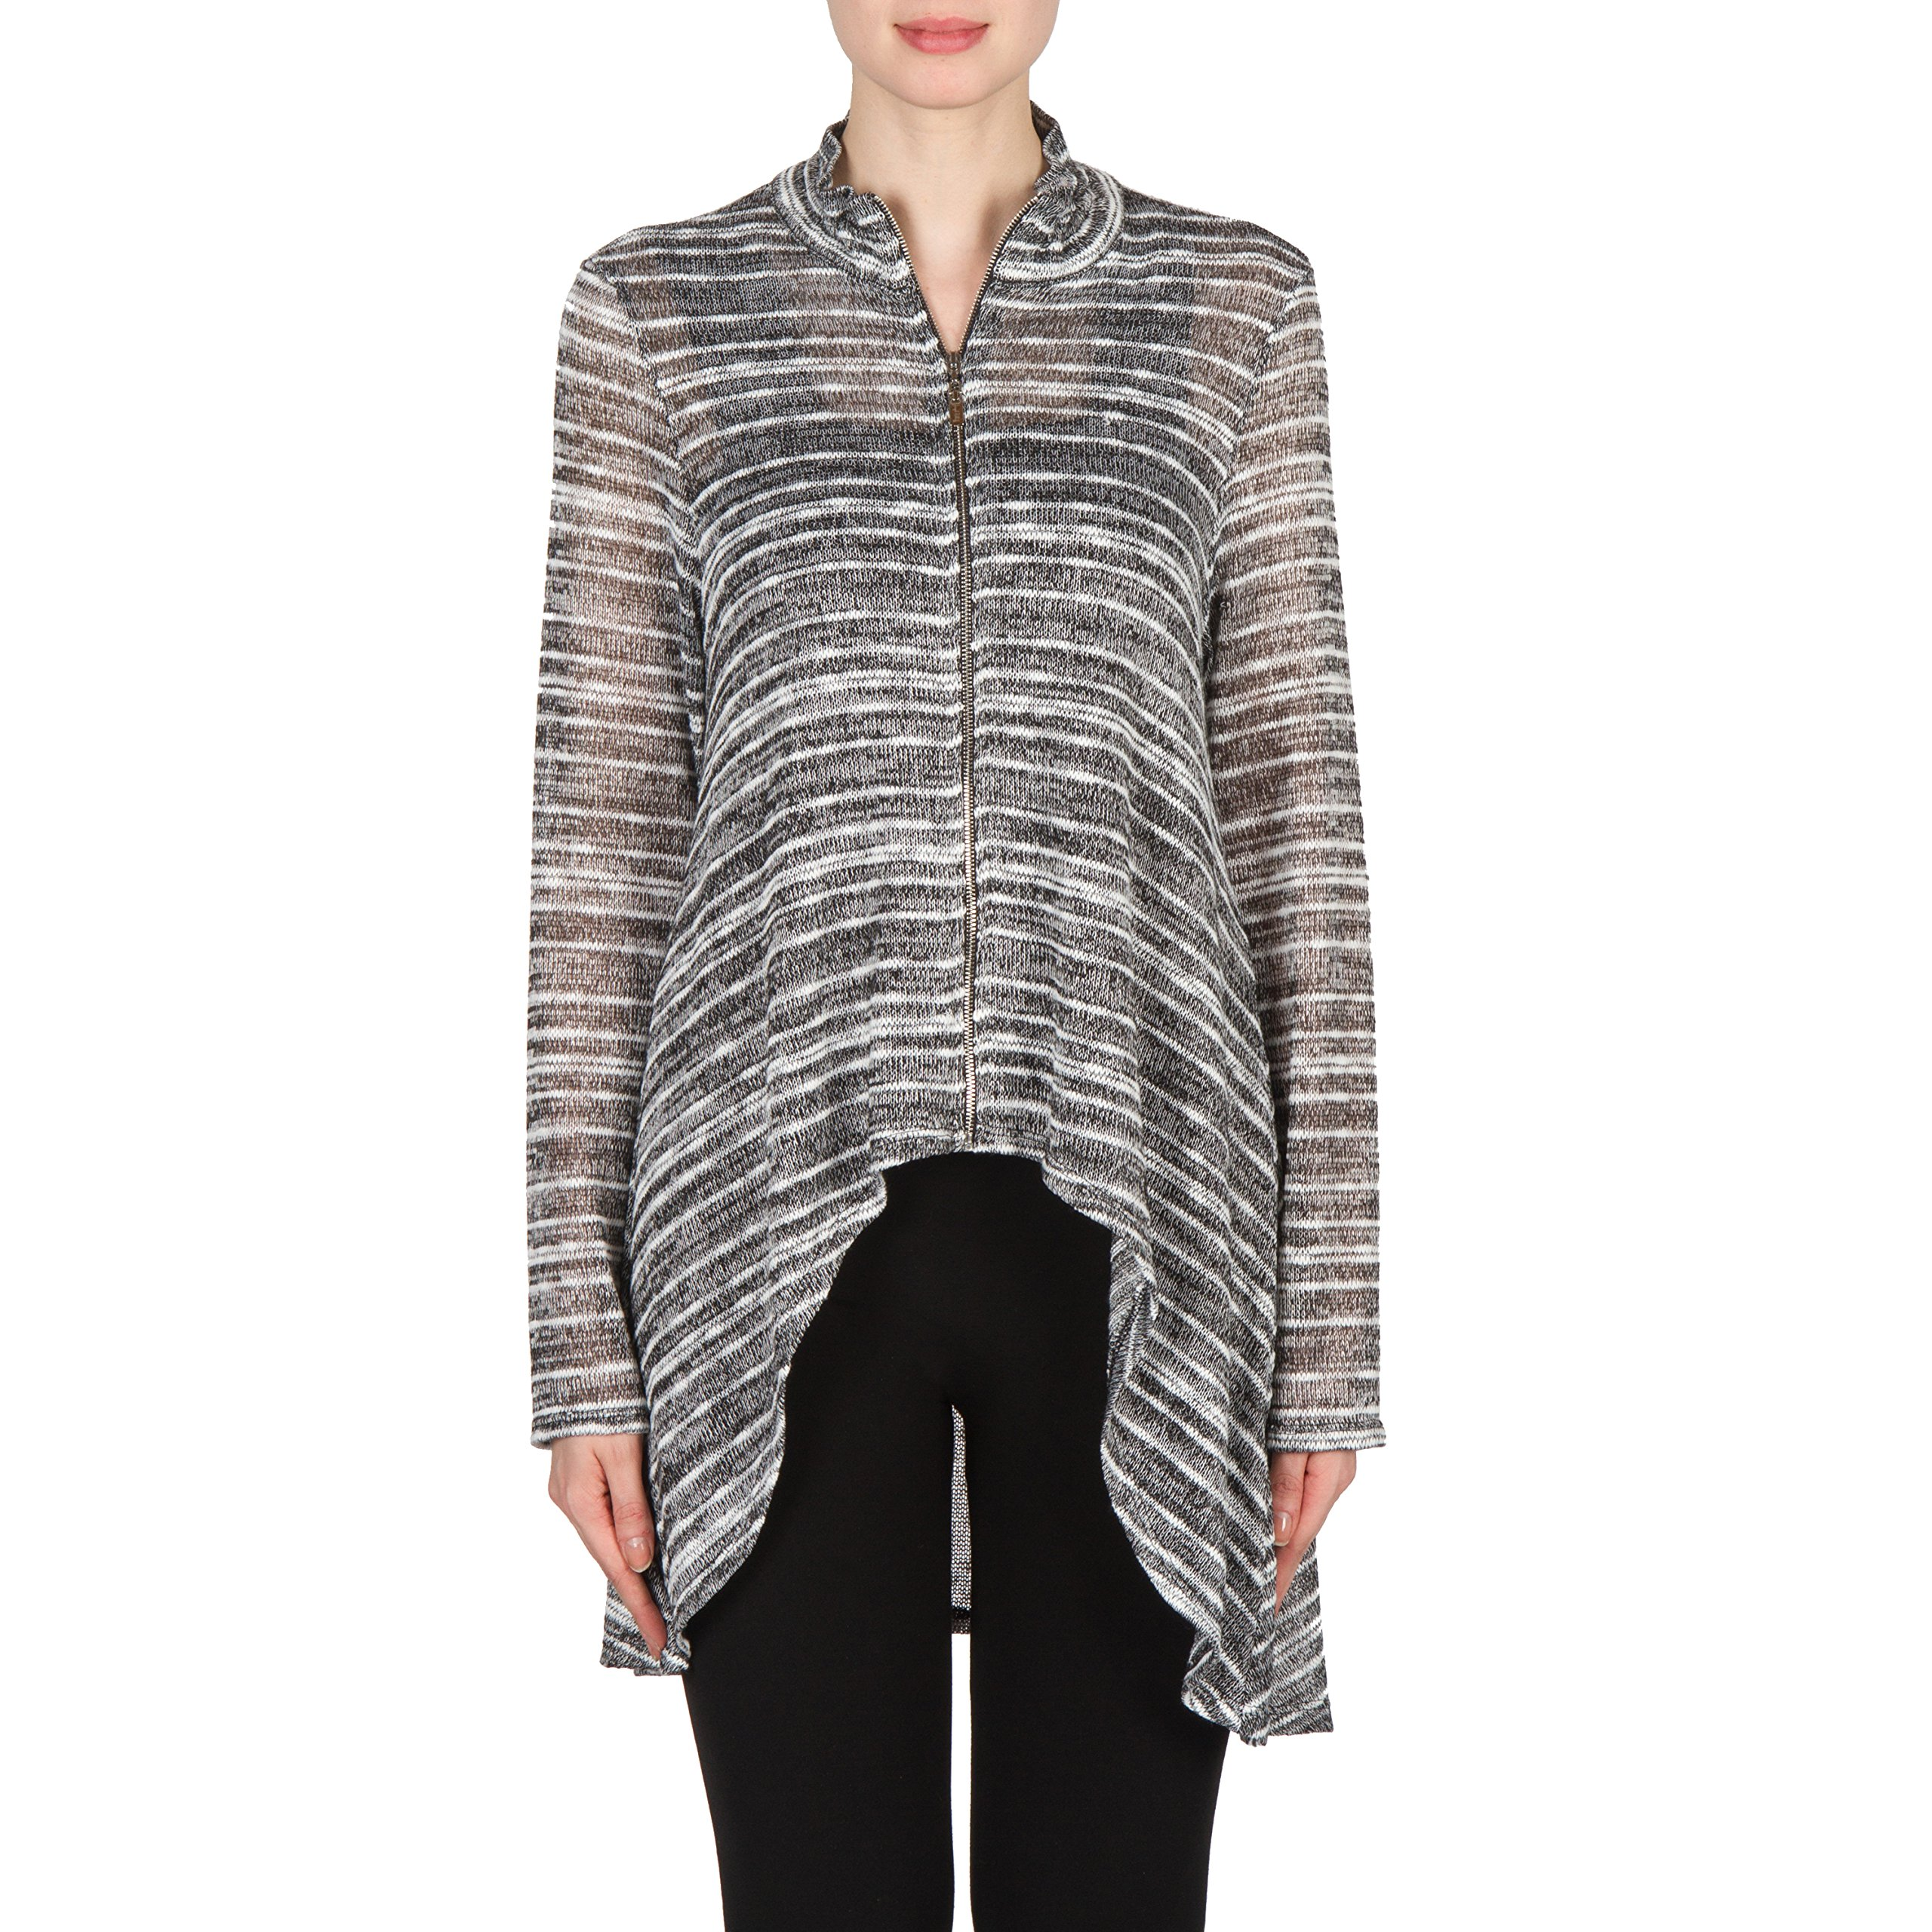 Joseph Ribkoff Zip Front Light-Weight Knit Top With High-Low Hem Style 173904 Size 14